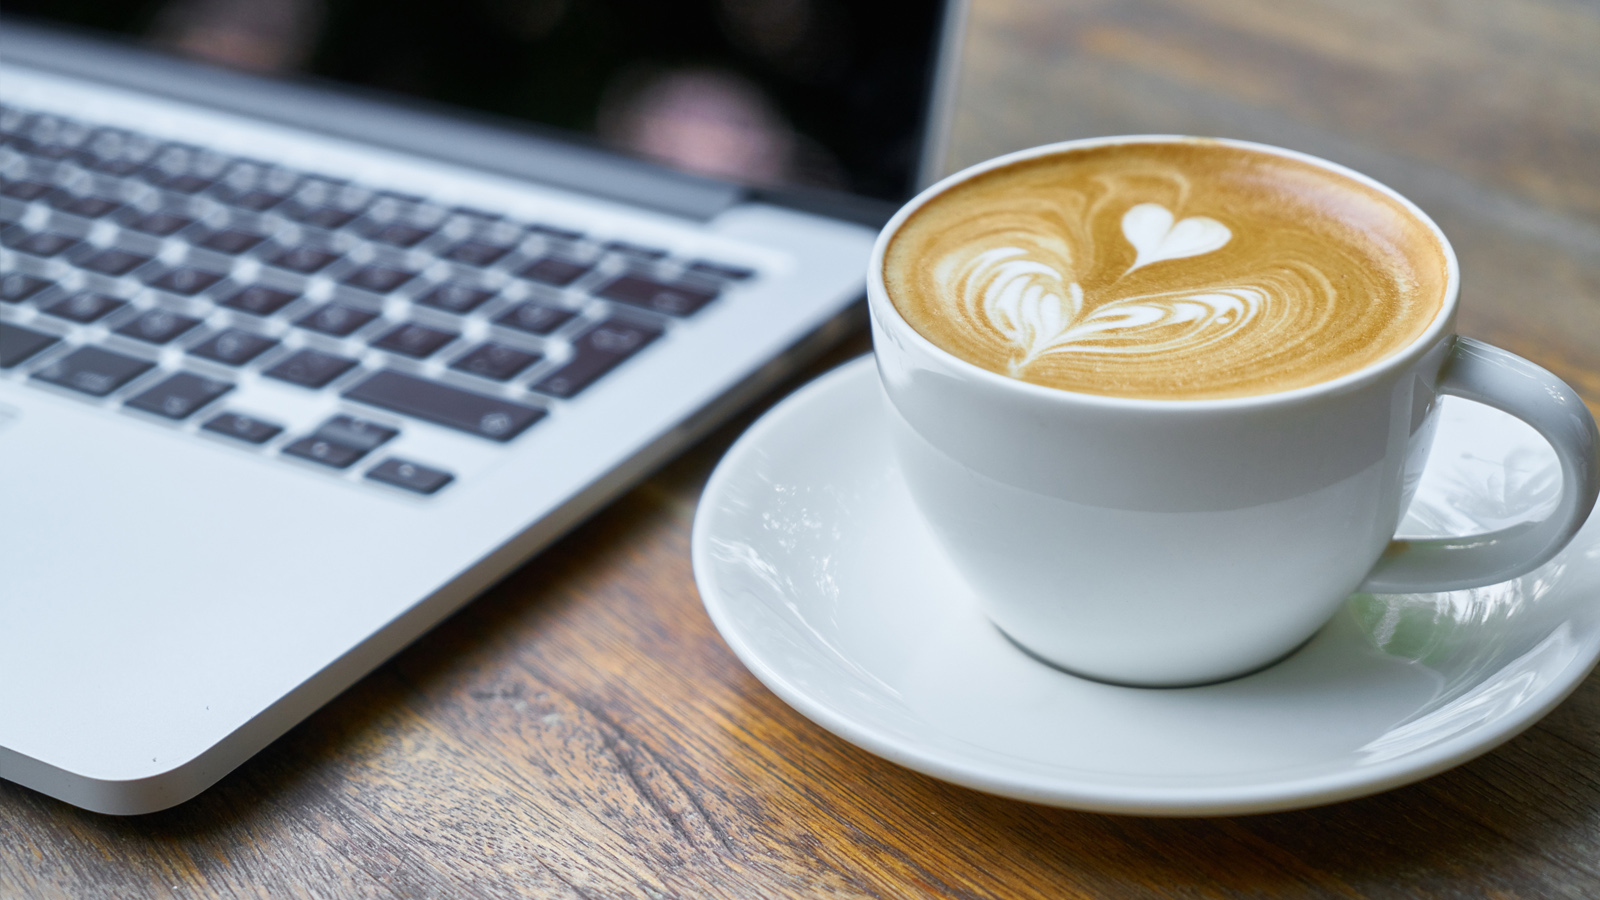 Virtual cup of coffee